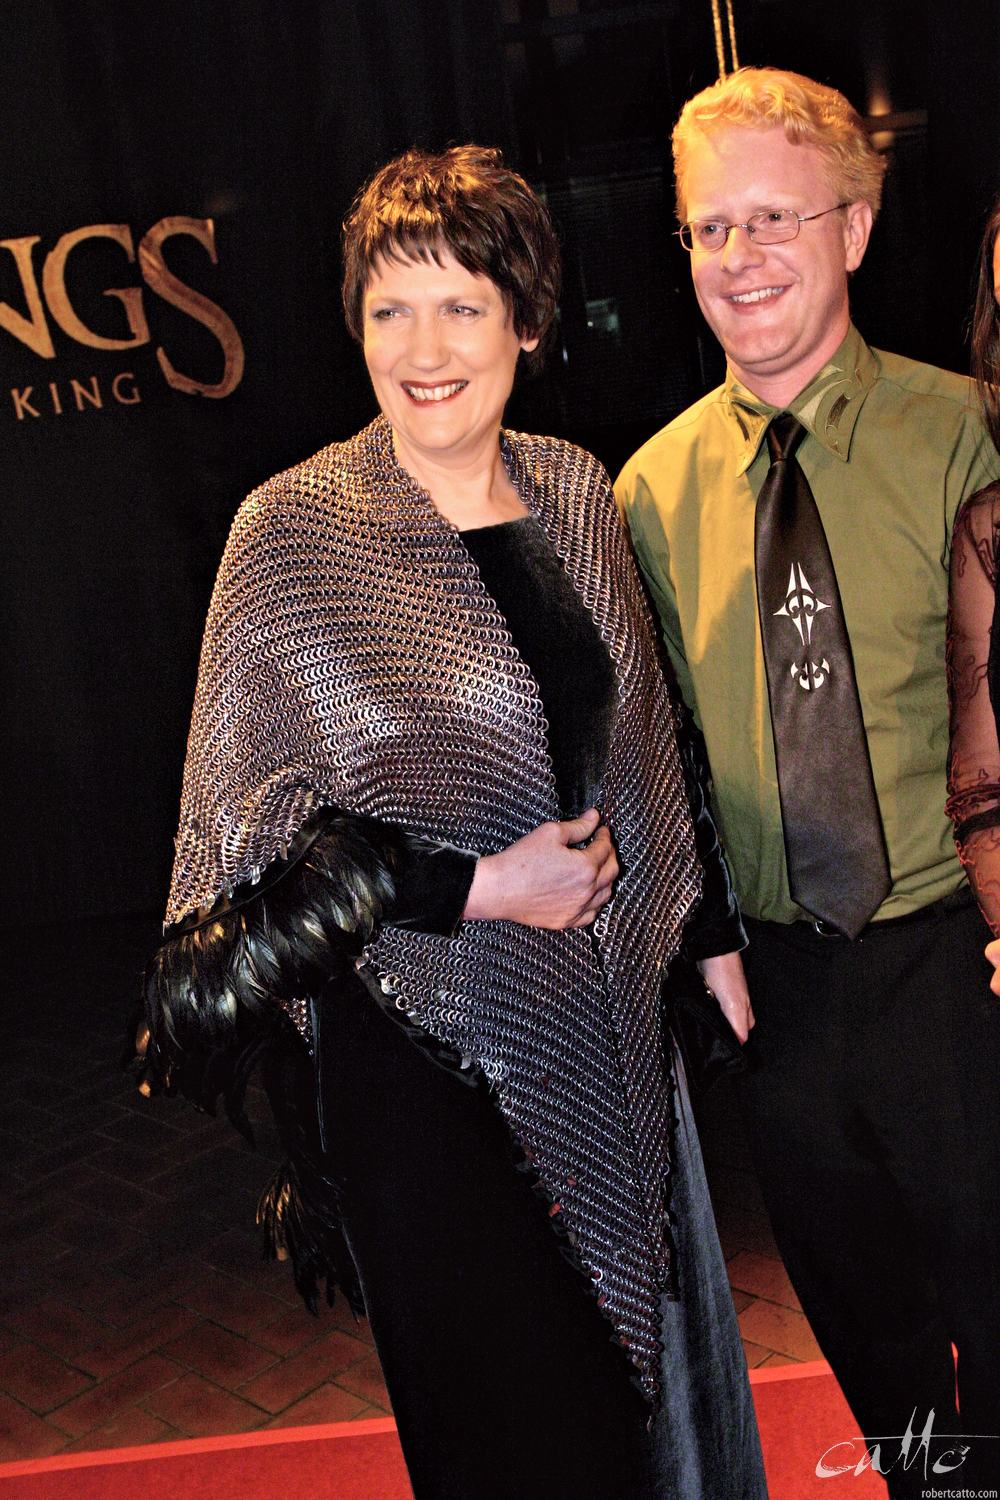 New Zealand Prime Minister Helen Clark wears a chain maille wrap by Weta Workshop at the World Premiere of The Lord Of The Rings: Return Of The King.